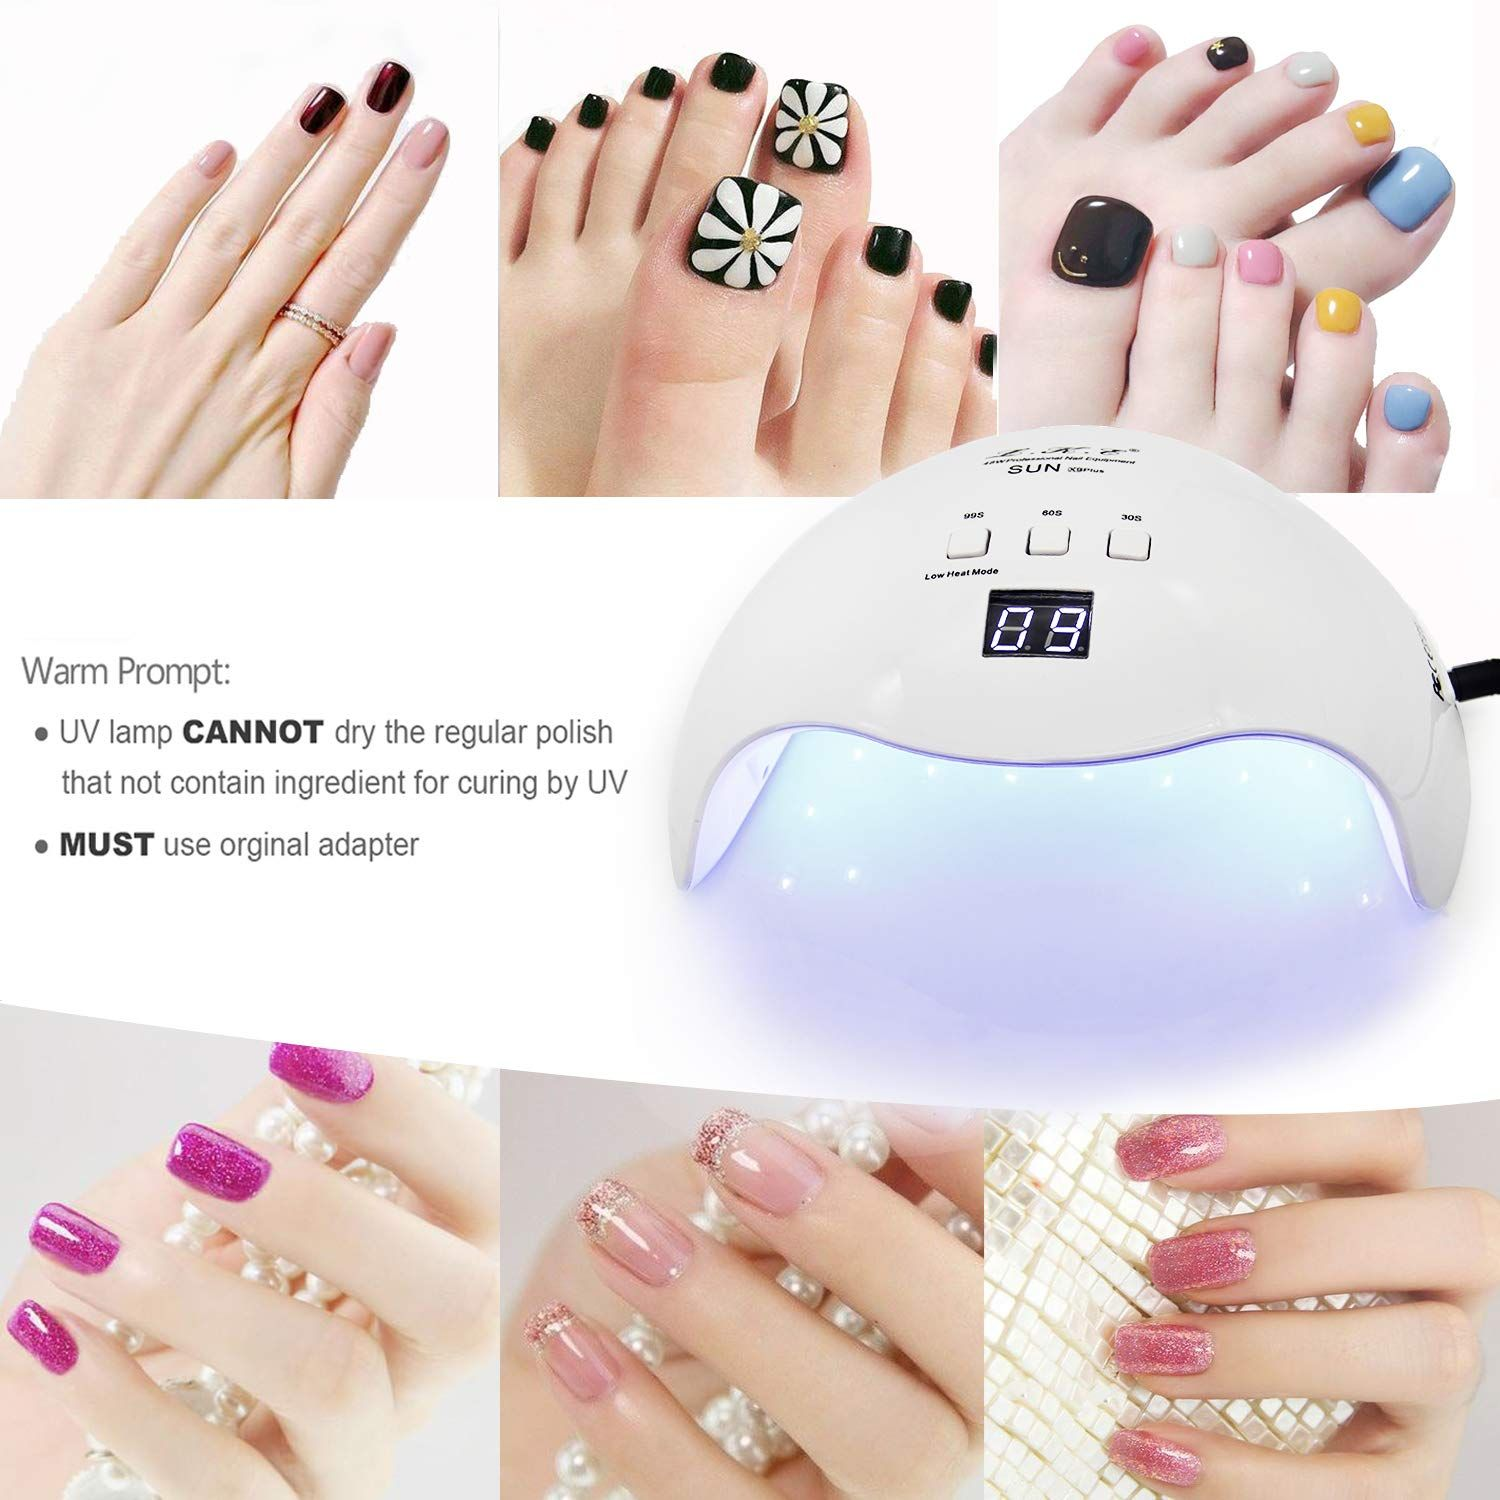 Gel Uv Led Nail Lamp Lke Nail Dryer 40w Gel Nail Polish Led Uv Light With 3 Timers Professional Nail Art Tools Accessor In 2020 Led Nail Lamp Gel Nail Polish Gel Nails